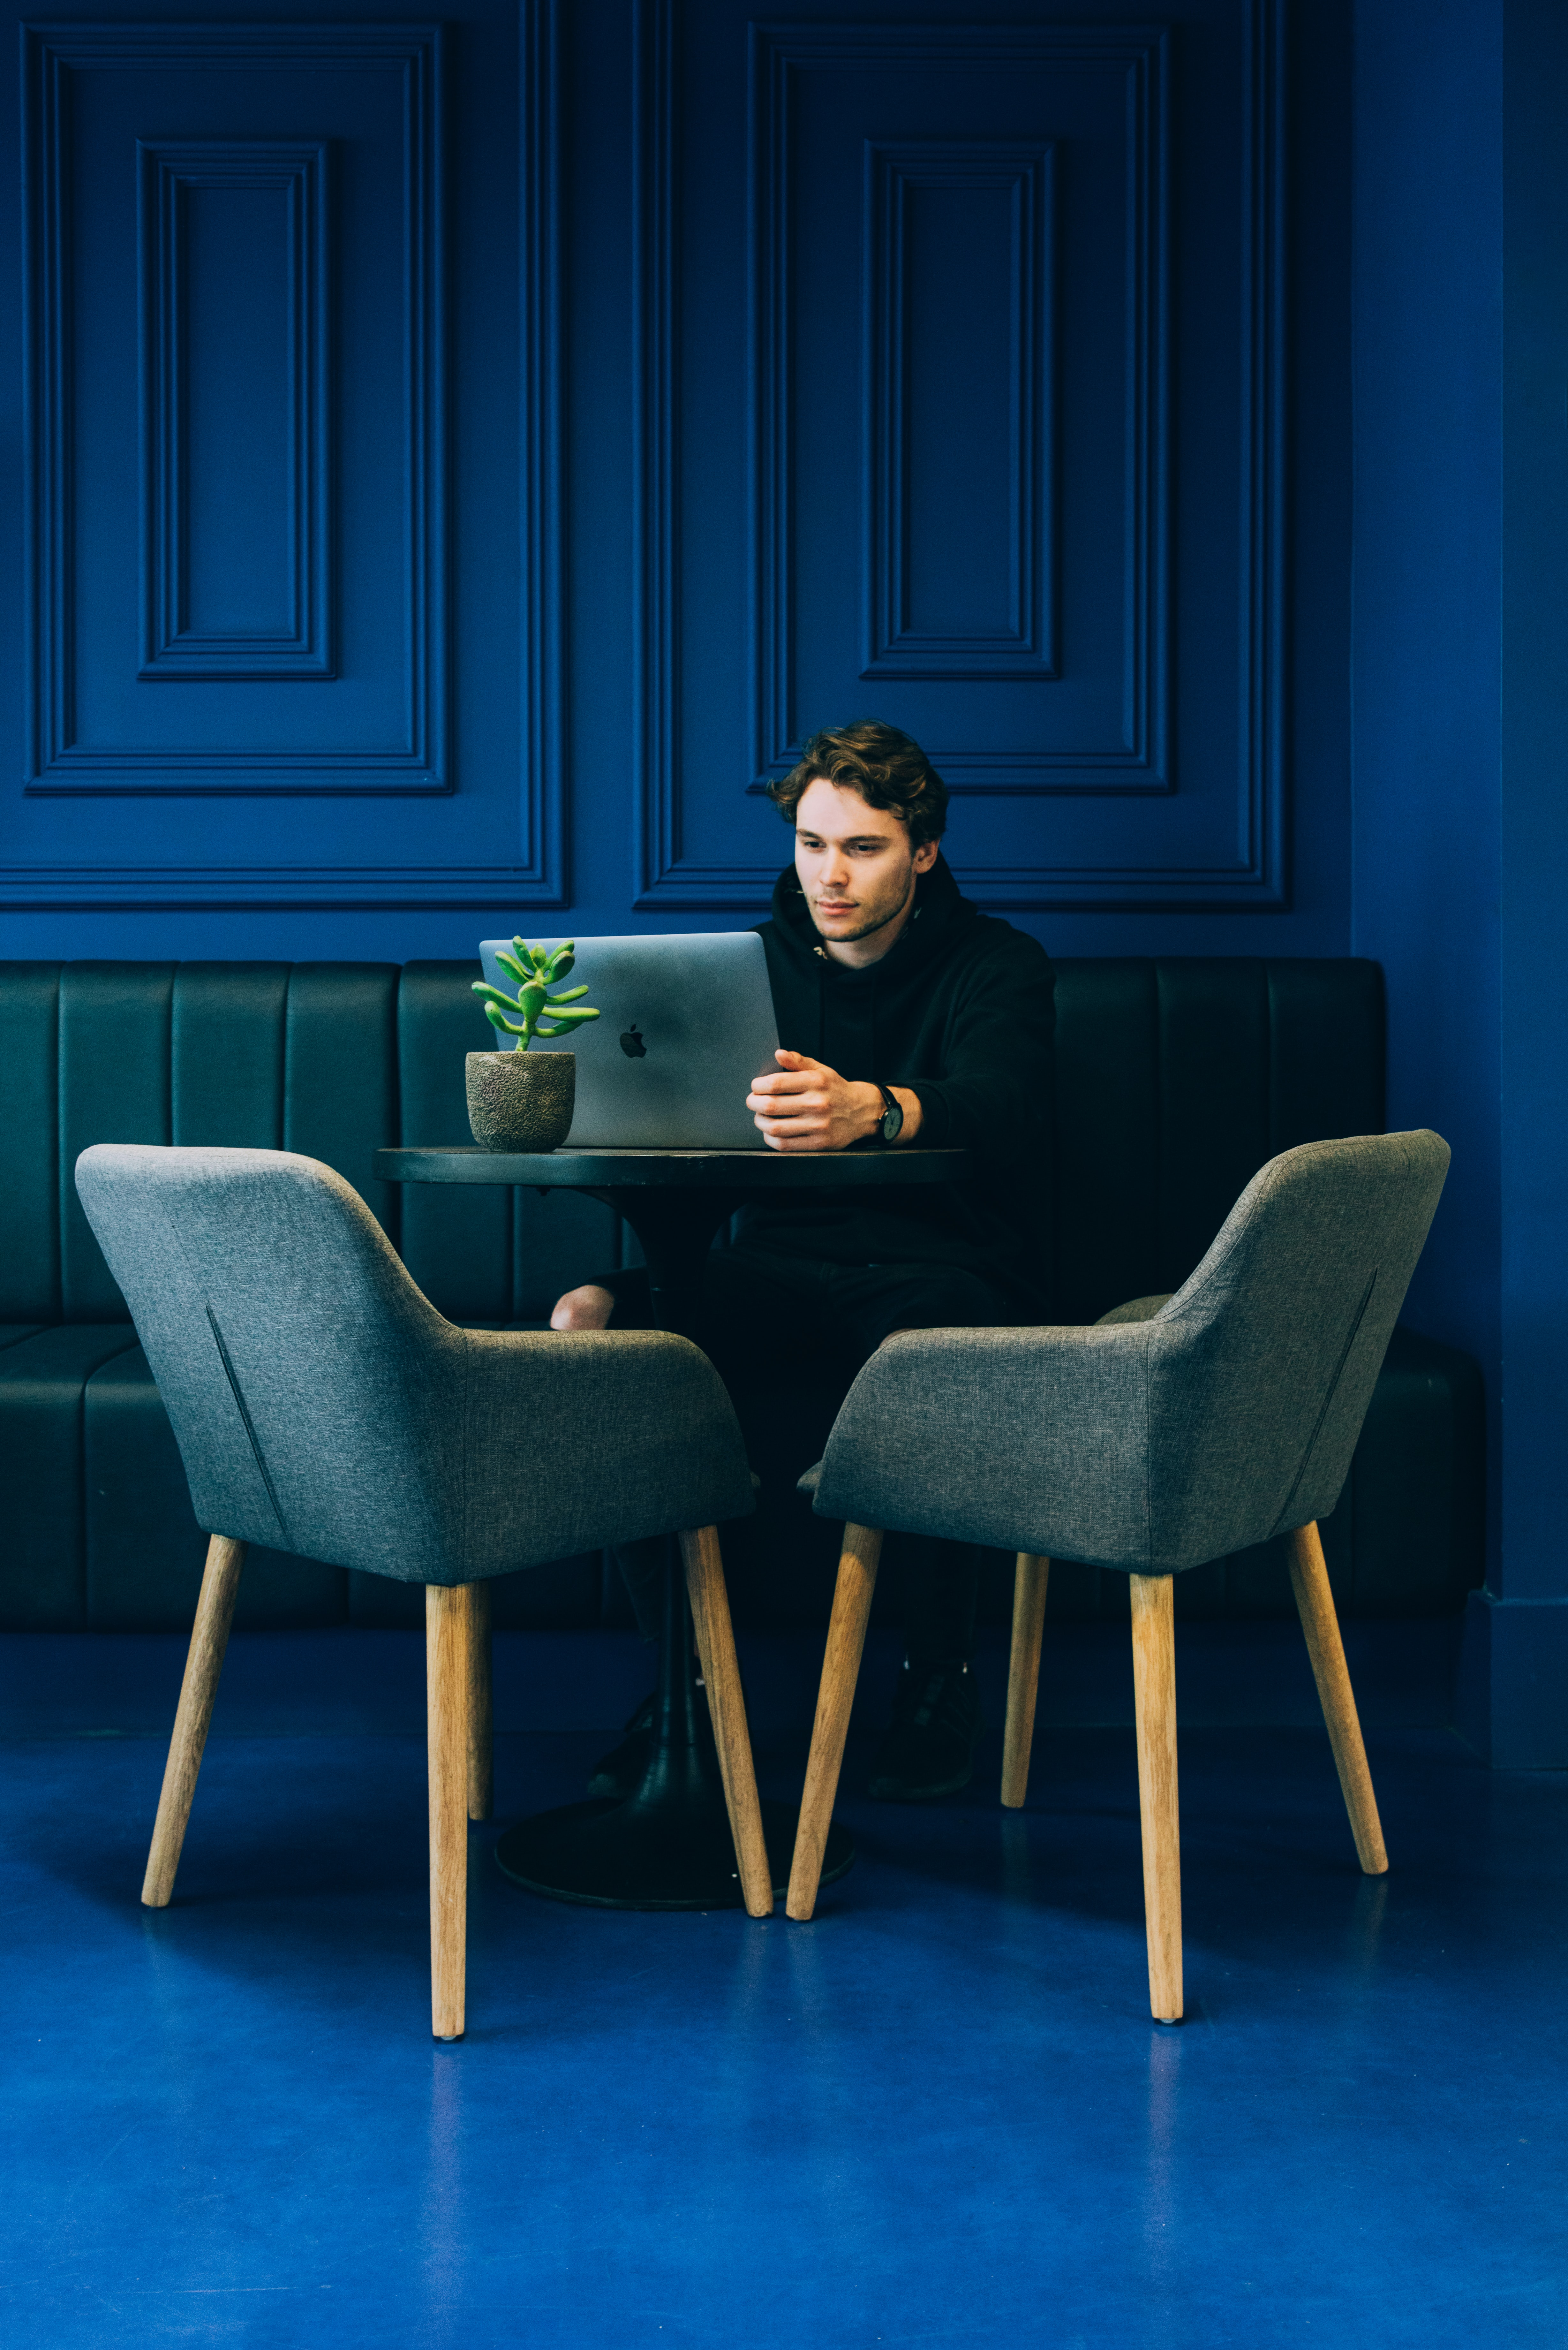 A man looking at a laptop on a leather seat at a blue wall